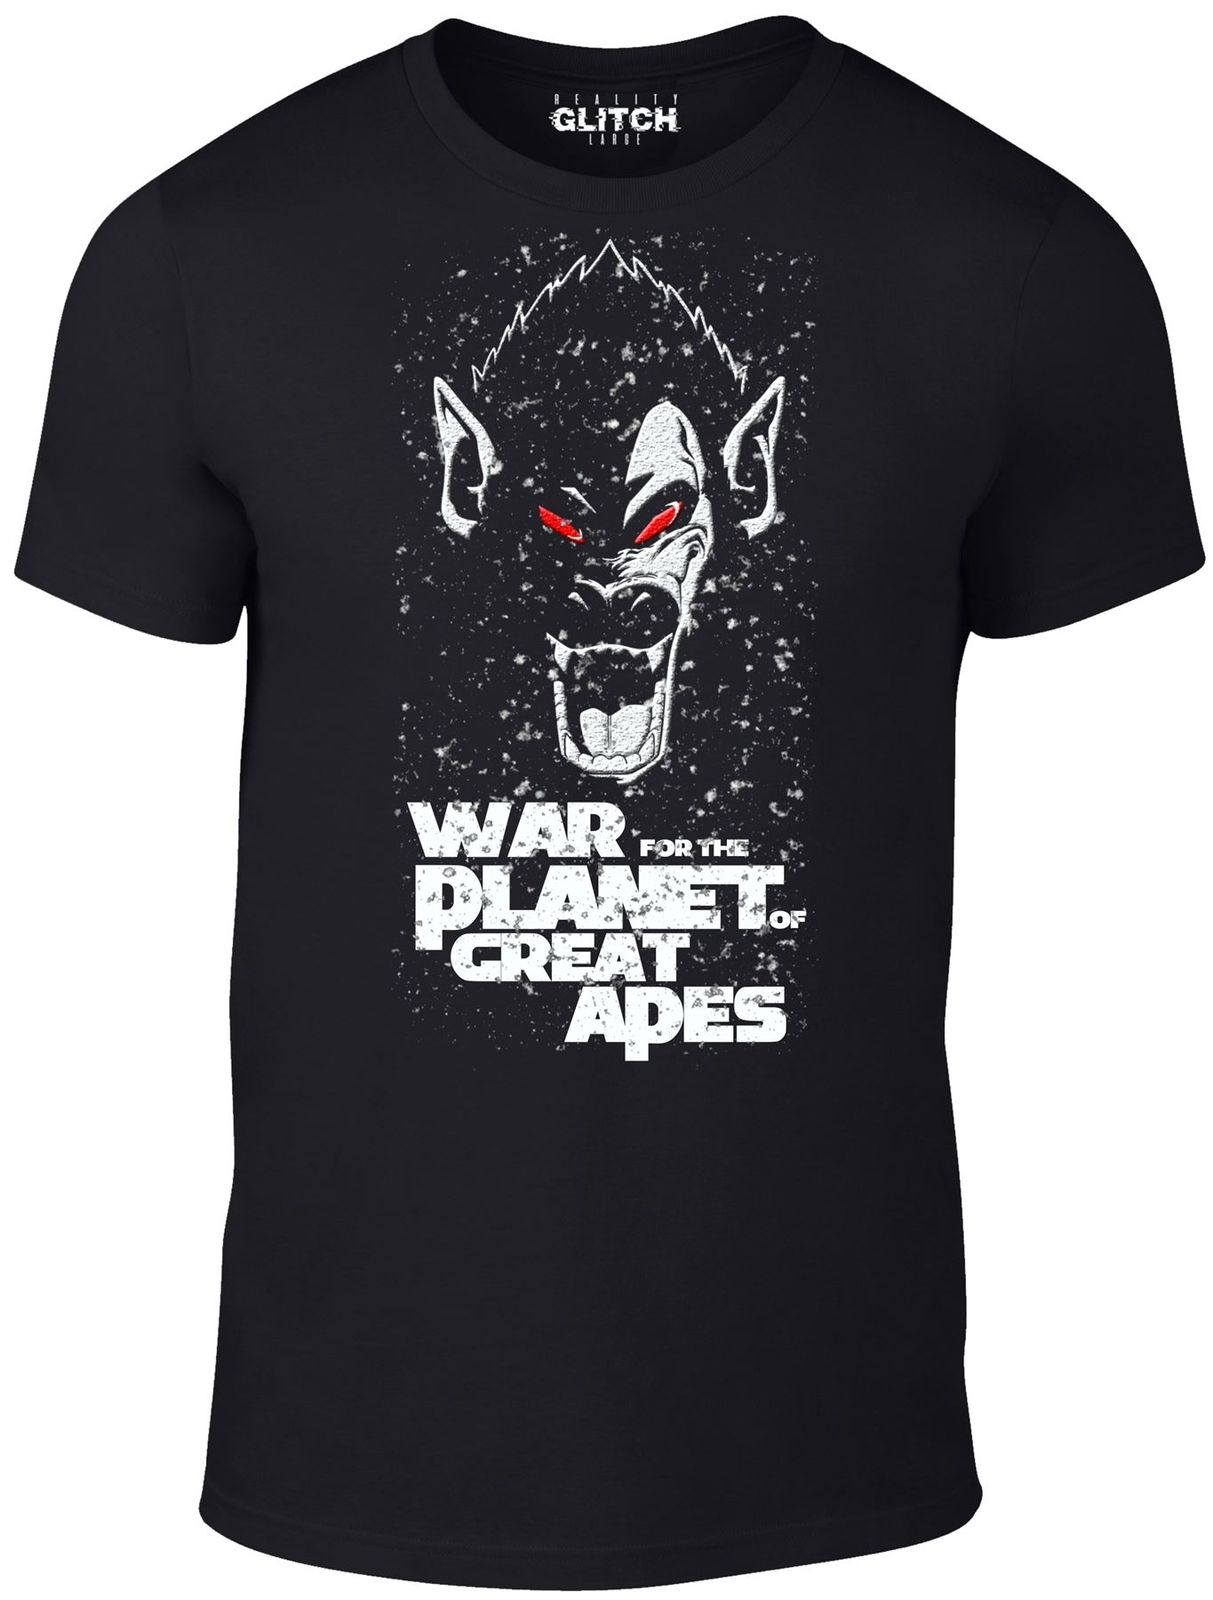 War of the planet of great apes T shirt Inspired Design 2019 fashion t shirt, 100% cotton tee shirt, tops wholesale tee